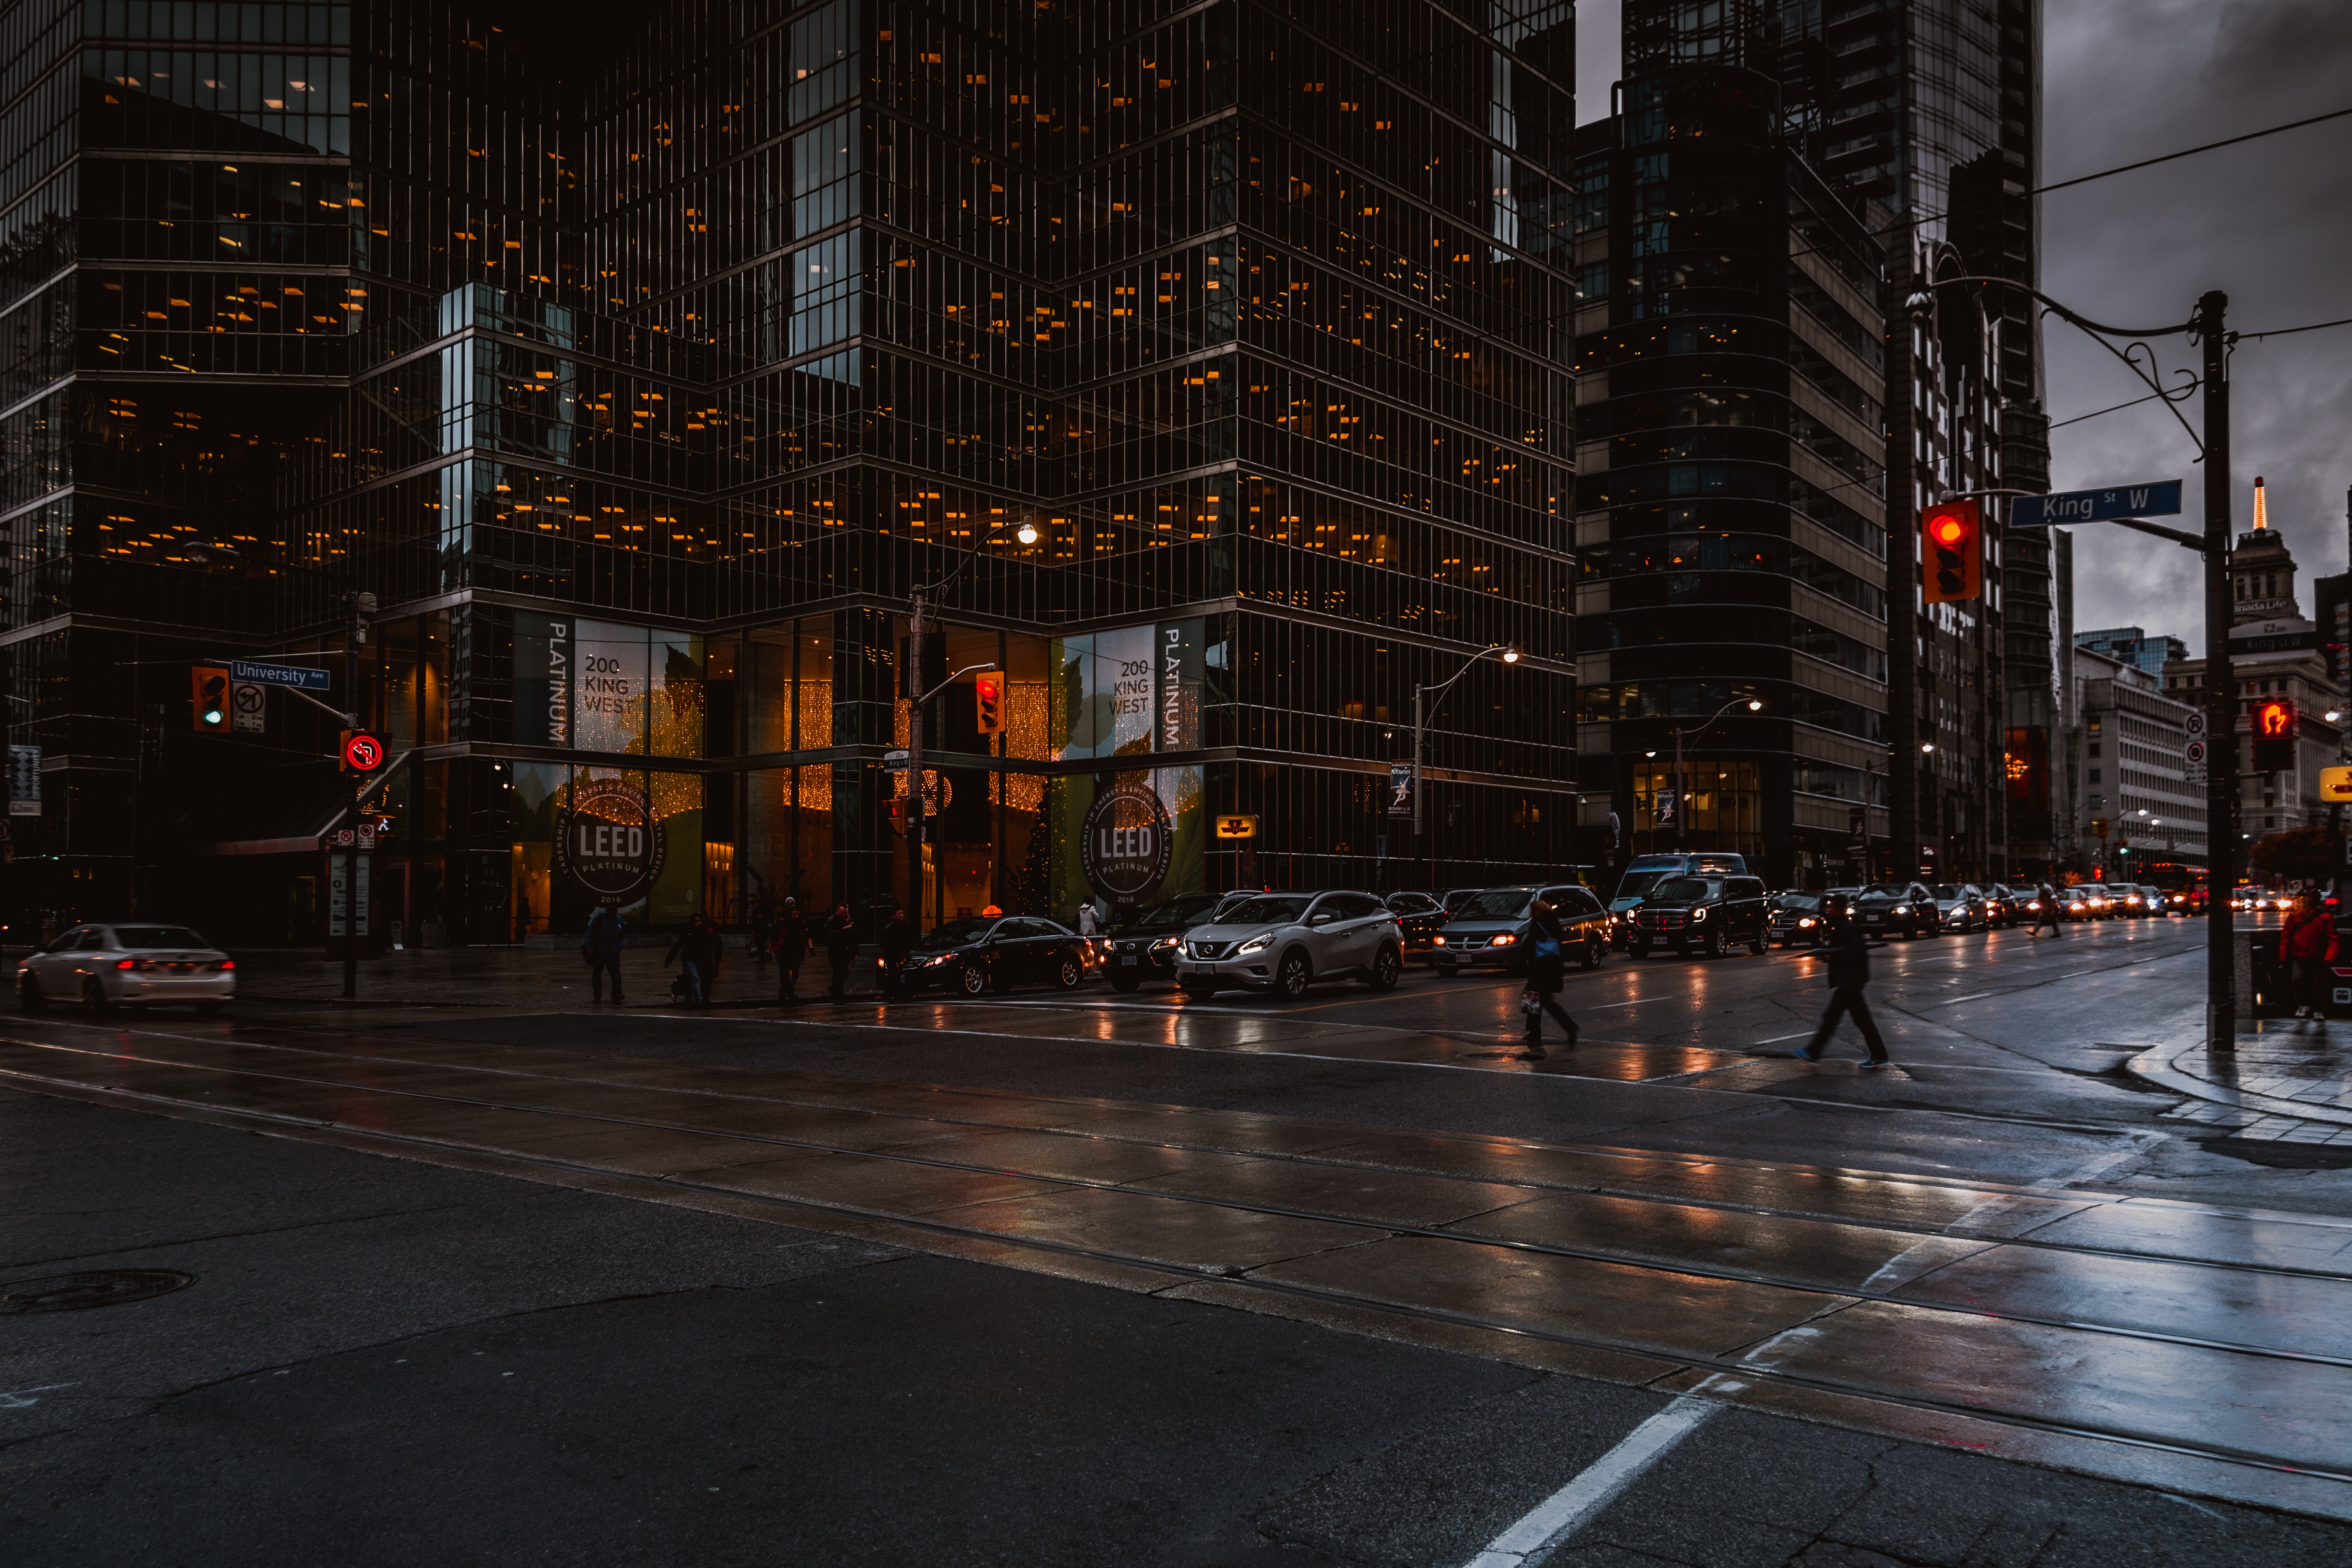 Silhouettes of pedestrians crossing a wet street in Toronto